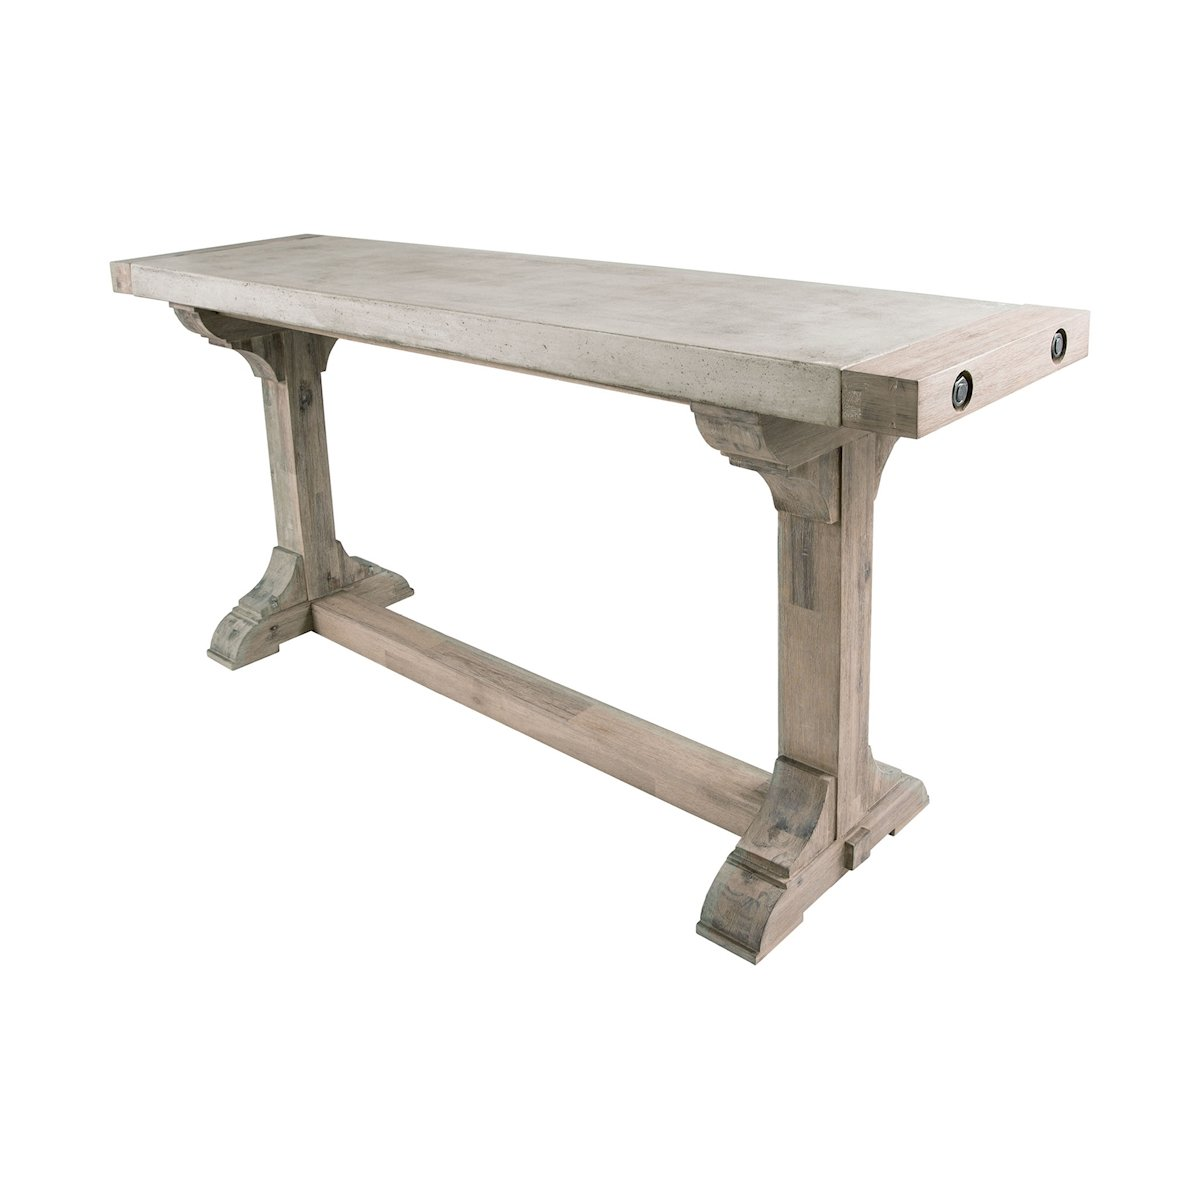 Dimond Home 157-020 Pirate Concrete & Wood Console Table, Waxed Atlantic Finish